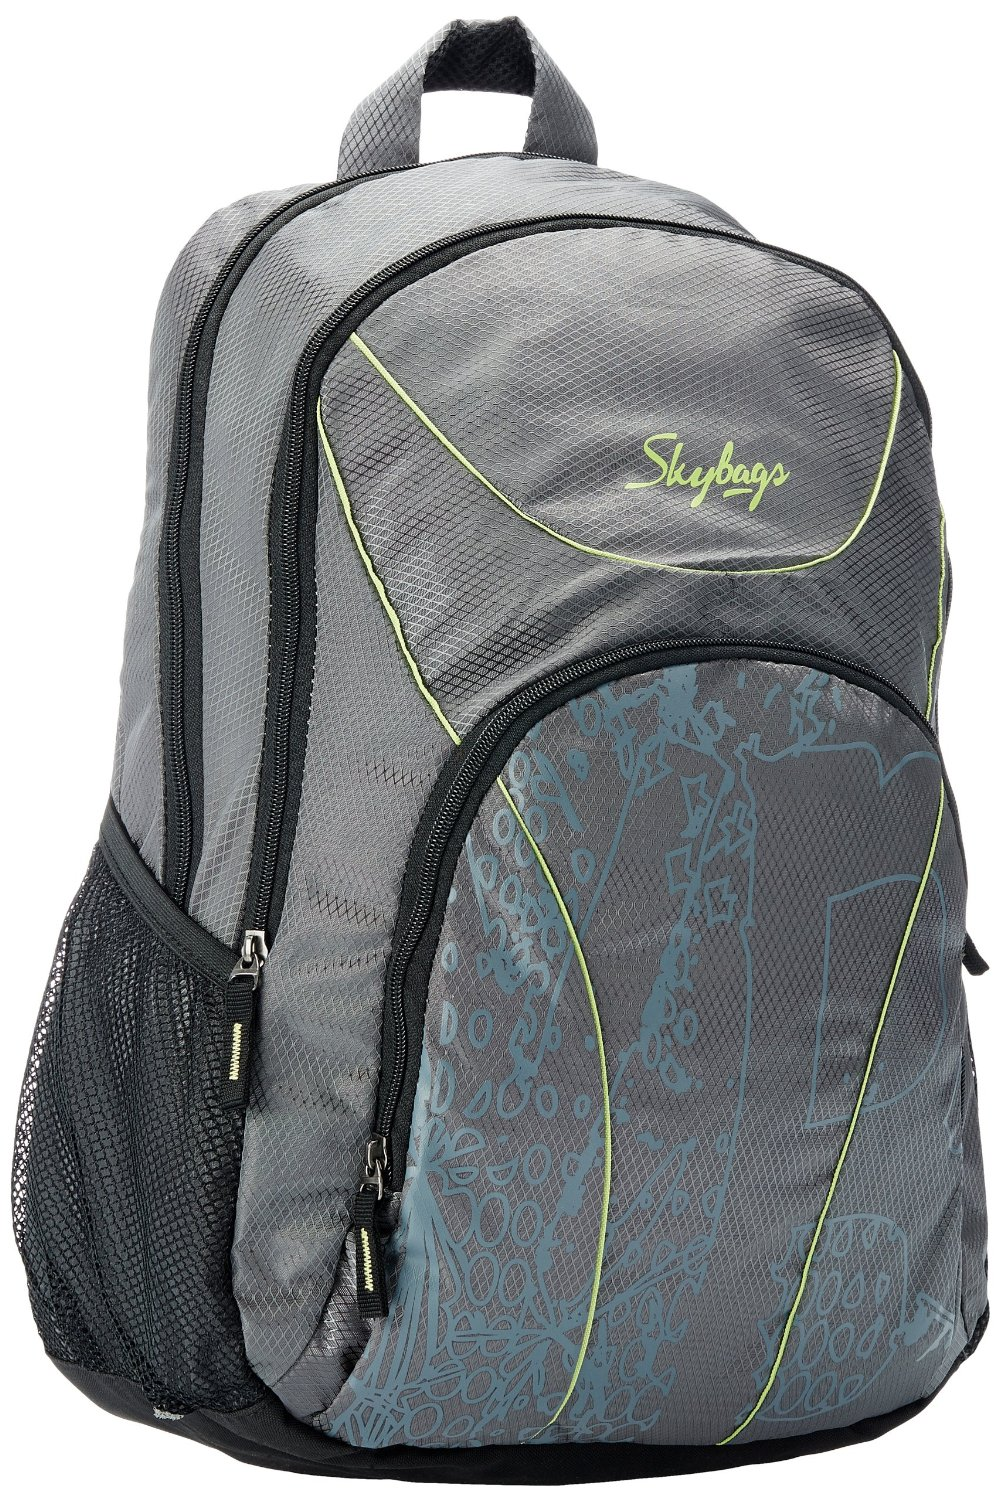 Skybags, Laptop Bags